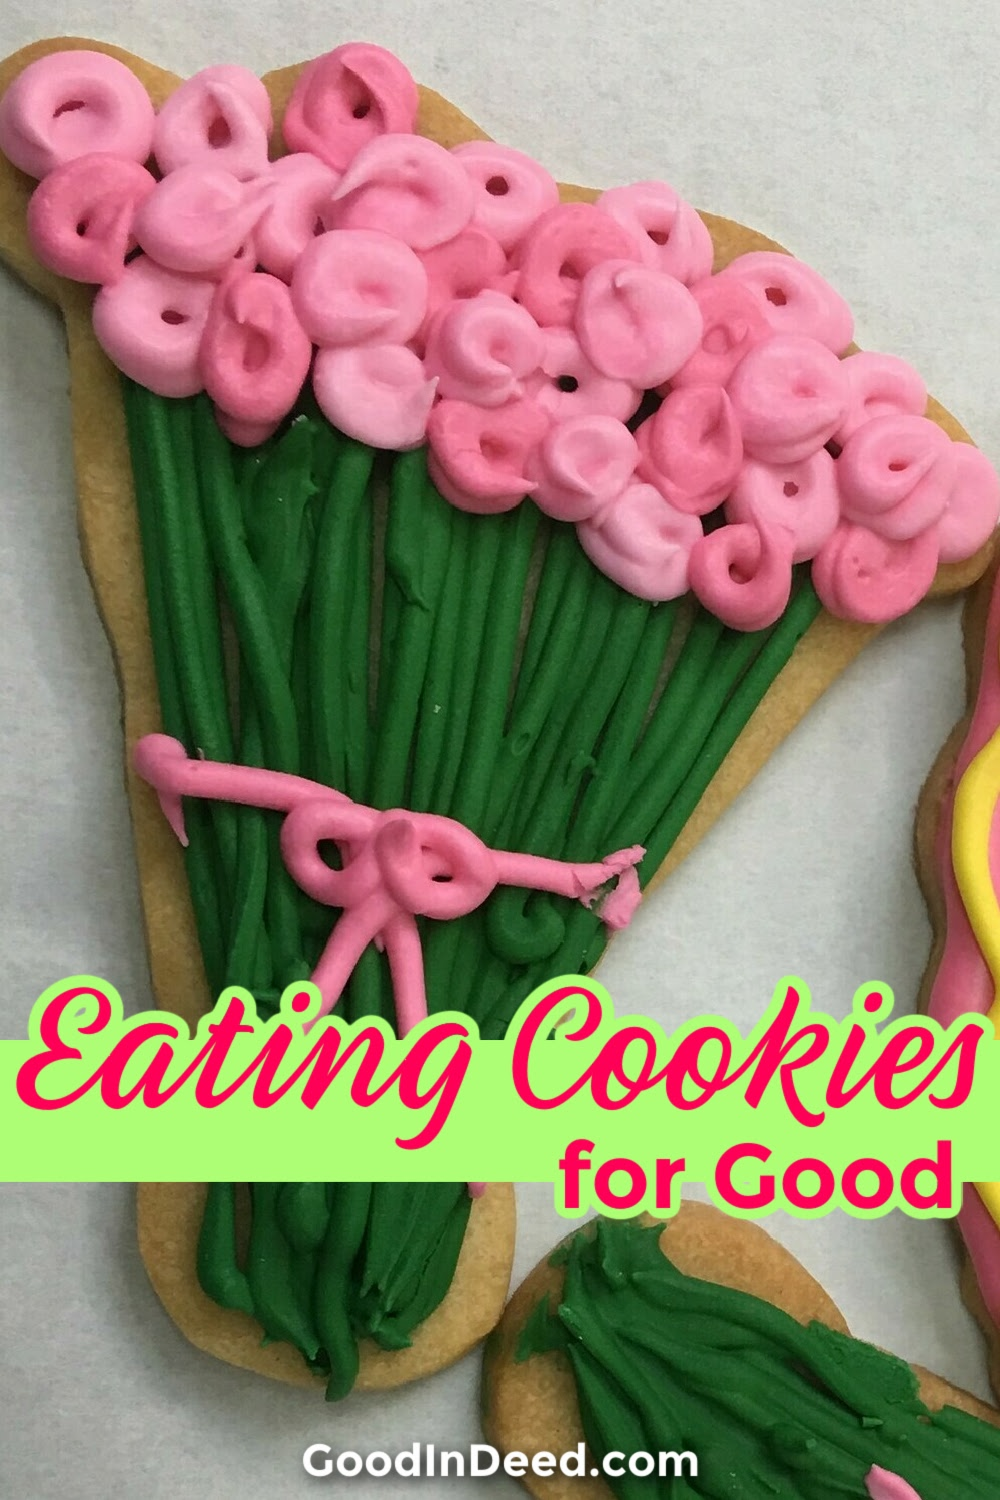 Eating cookies for good can also turn into giving cookies for good and will always be buying cookies for good.